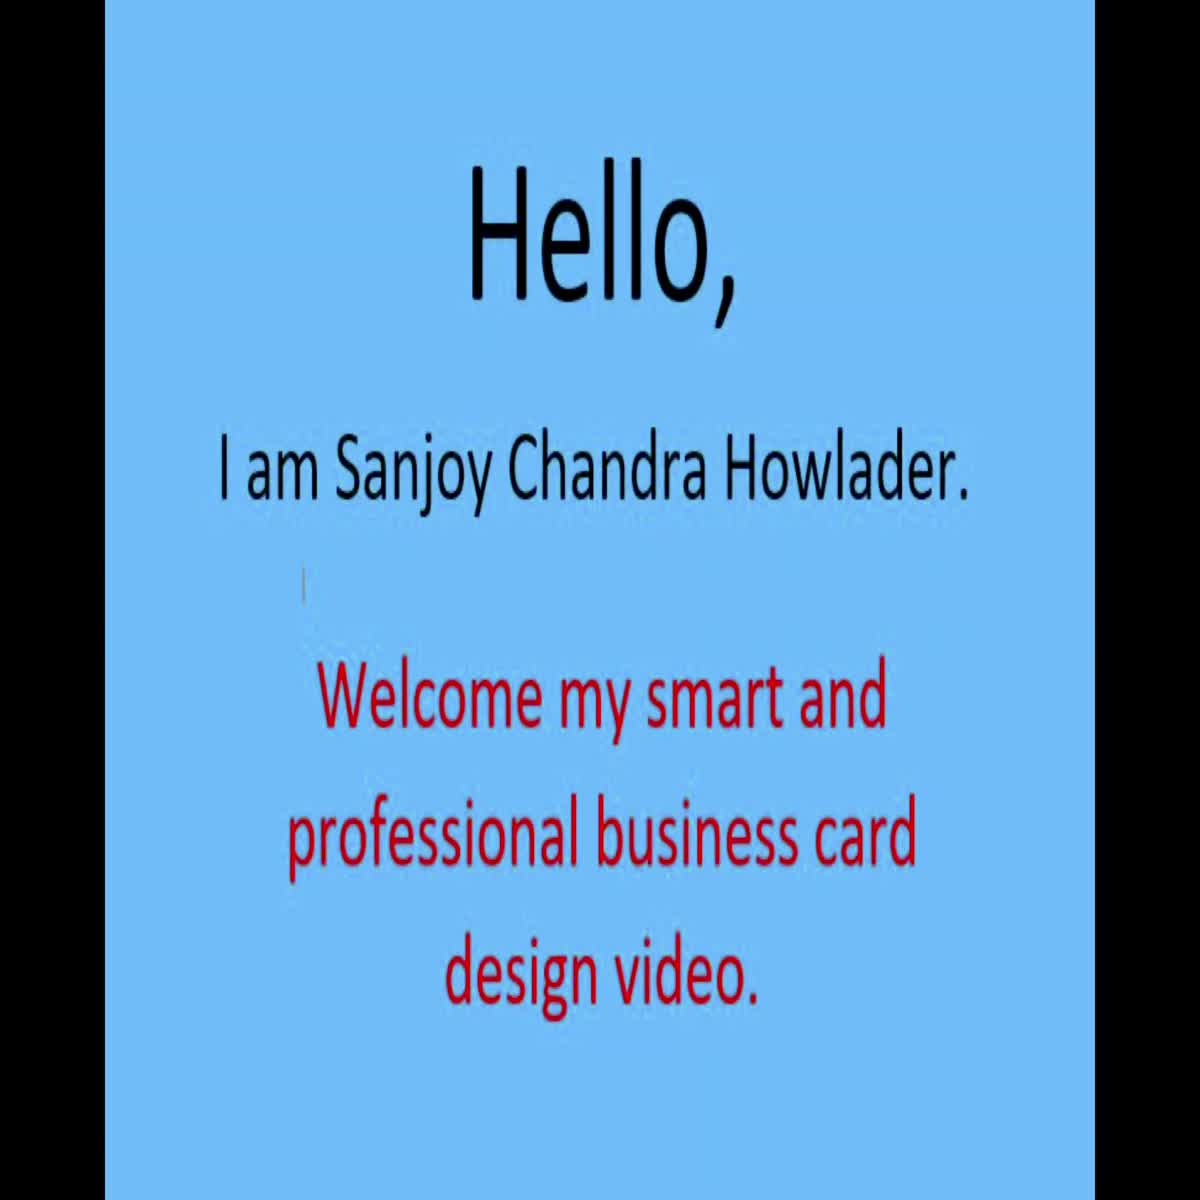 I will do a smart and professional business card design